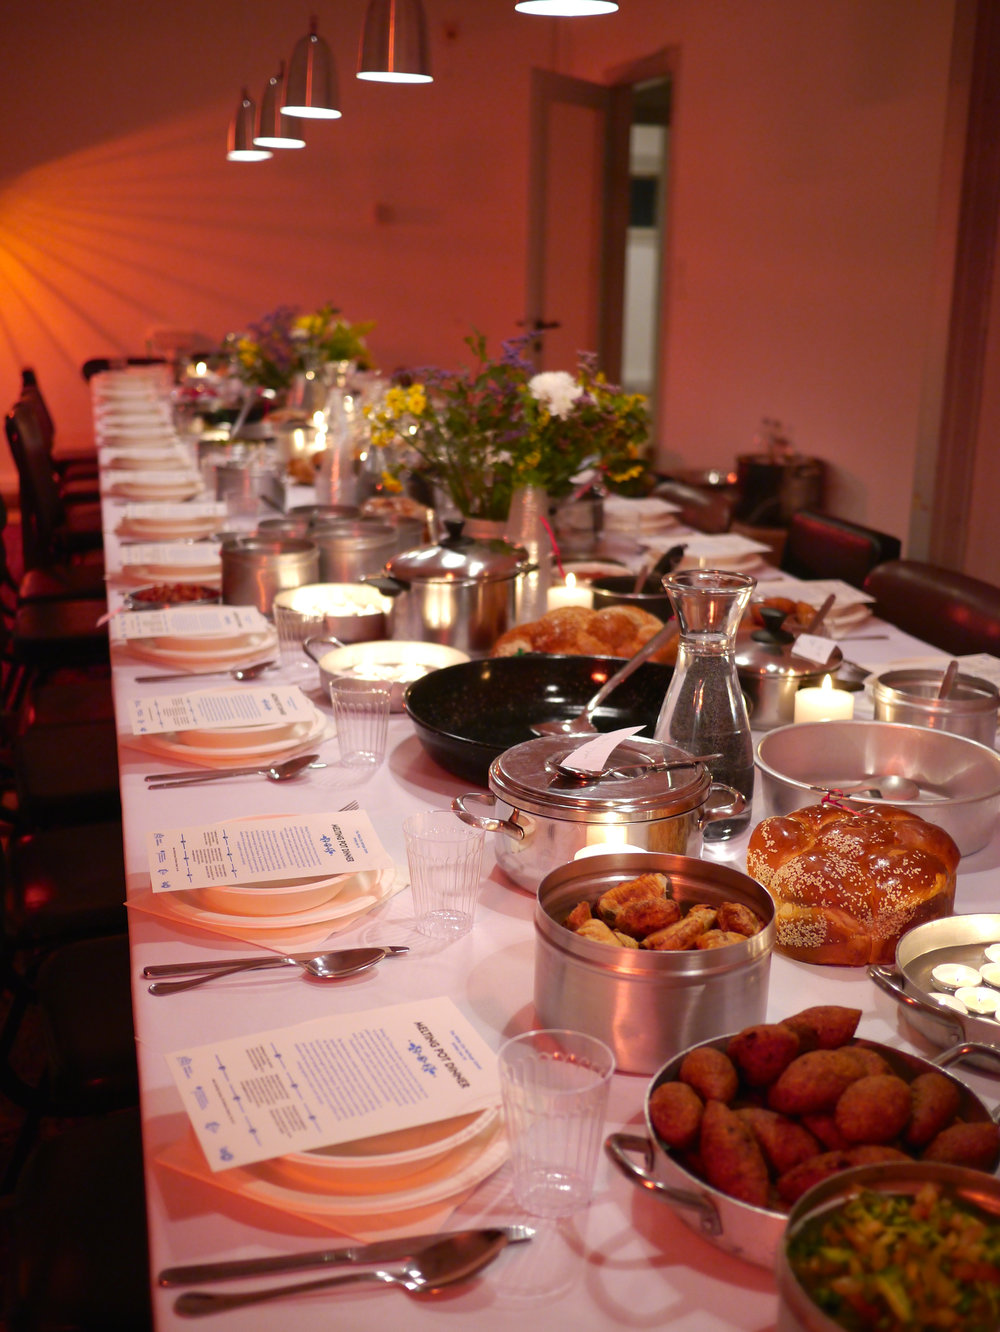 Melting Pot Dinner - A bespoke eating experience created for The White City Centre, TLV, 2016 The concept dinner took place in the former private dining room of a Jewish German immigrants' family home, now repurposed as a public research & education center. Diners were invited to gather around a large communal table and experience a typical festive Israeli family meal in a private- public space that evoked a sense of family, home & Gemütlichkeit as well as history, tradition and conviviality. The Sabbath dinner, a weekly ritual in most Israeli households, is typically composed of an excessively large array of dishes reflecting the 'Israeli cuisine'; the existing local food culture, local ingredients and the various cuisines and food memories brought by each Diaspora. The abundance of cooking pots formed a new topography; an aesthetic and gastronomic experience indicative of the various cuisines and cultures, both local and from afar, coming together to create a new identity, thus, a melting pot.Production & realisation: Arch. Sabrina CeglaDinner prepared by: Azura & Elran ShreflerGraphic design: Rachel Kinrot